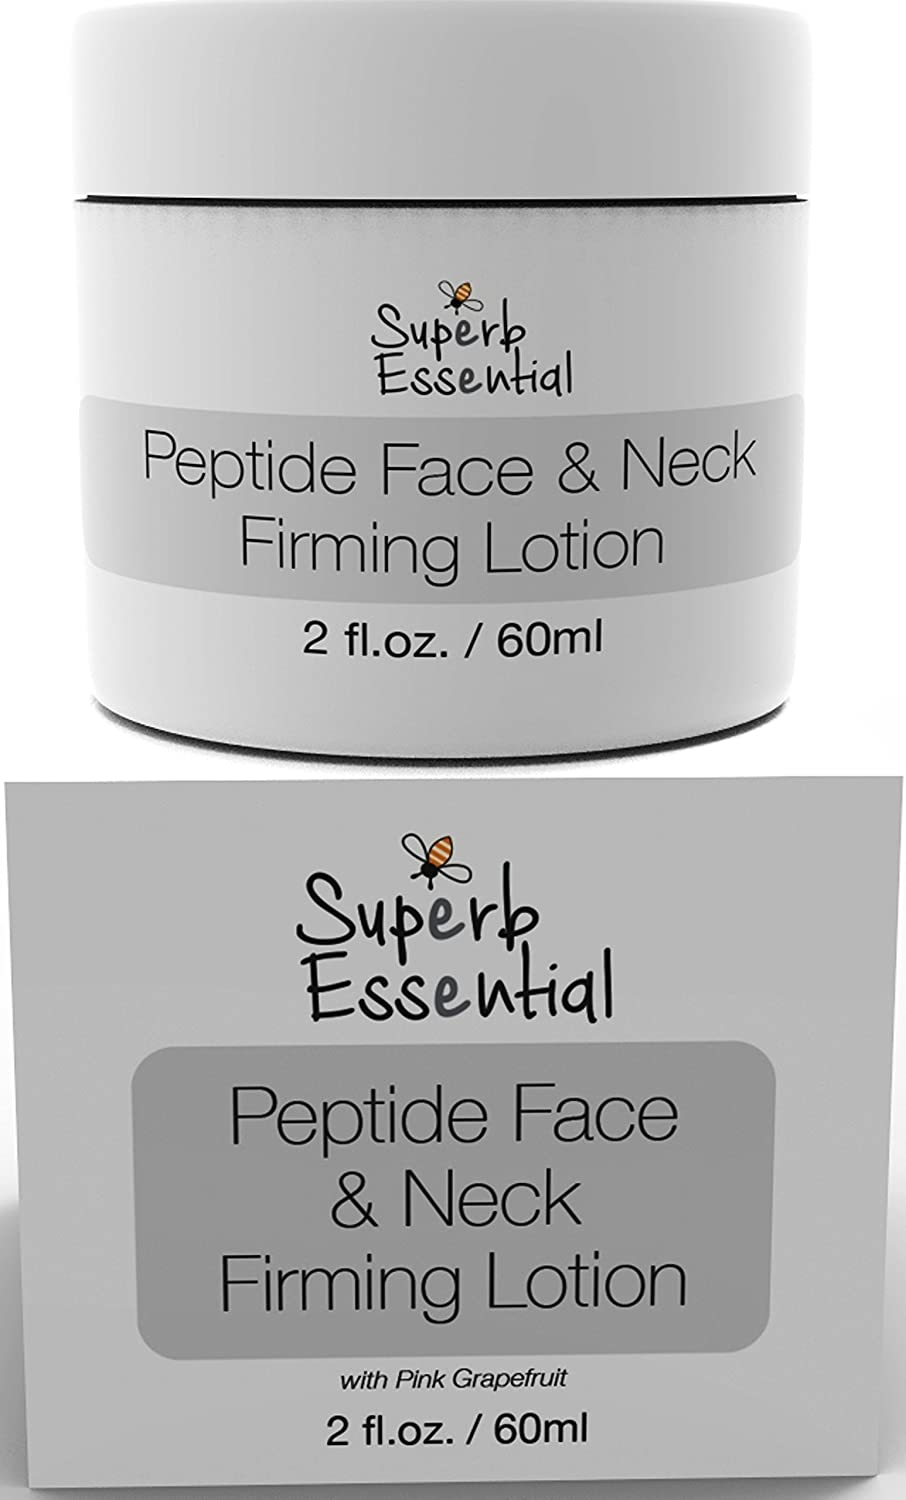 Peptide Face & Neck Firming Cream Lotion - Moisturizing - Smoothing - Fine Line Reducing - Vit 'B' Rich Royal Jelly Promotes Healthy Radiance - Start Getting Comments of How Much Younger You Look! Superb Essential Skin Care